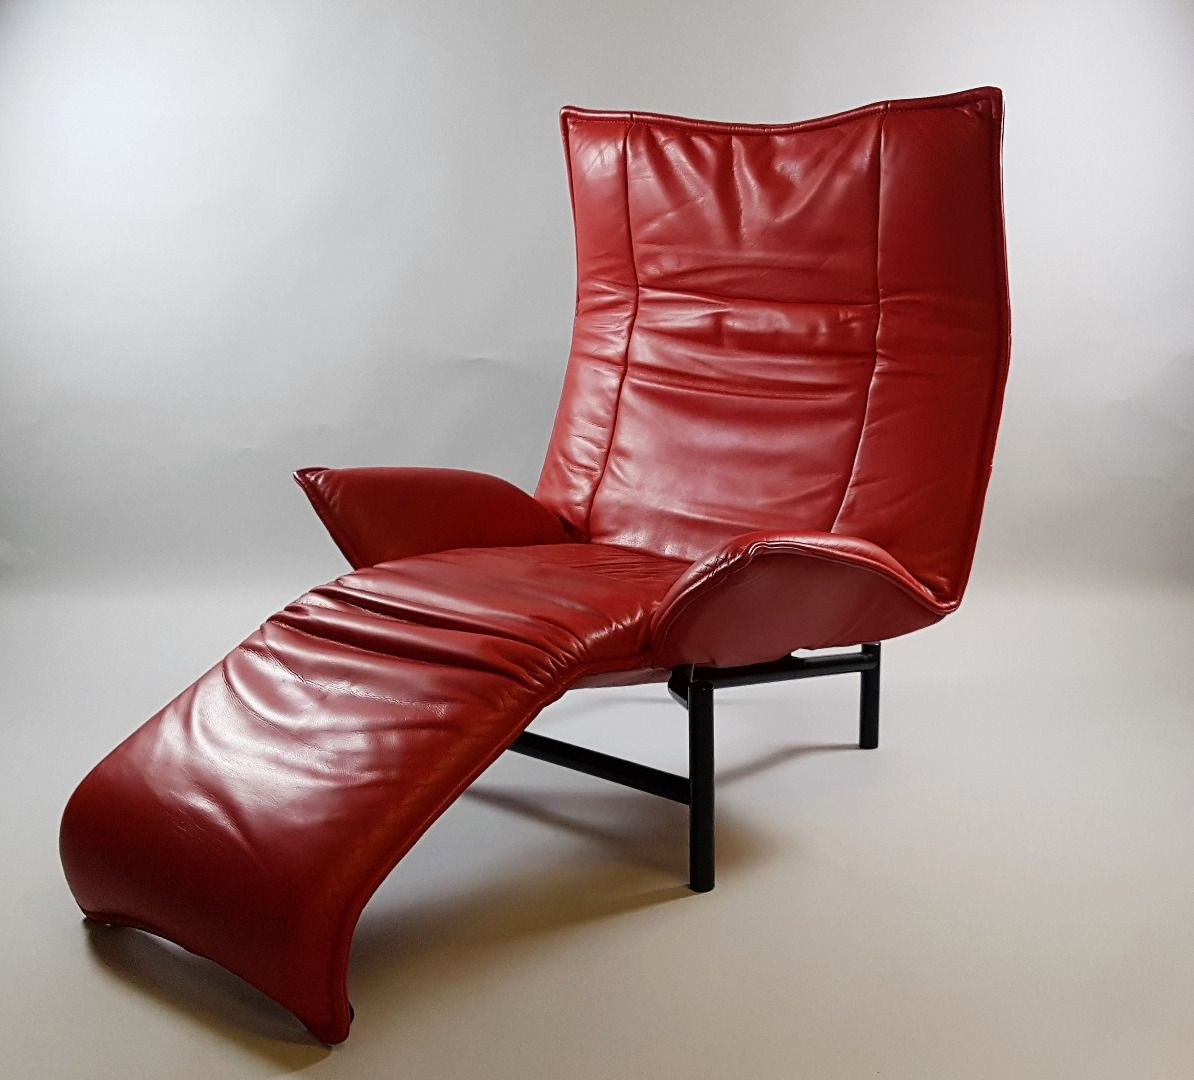 Vintage Veranda Leather Lounge Chair By Vico Magistretti